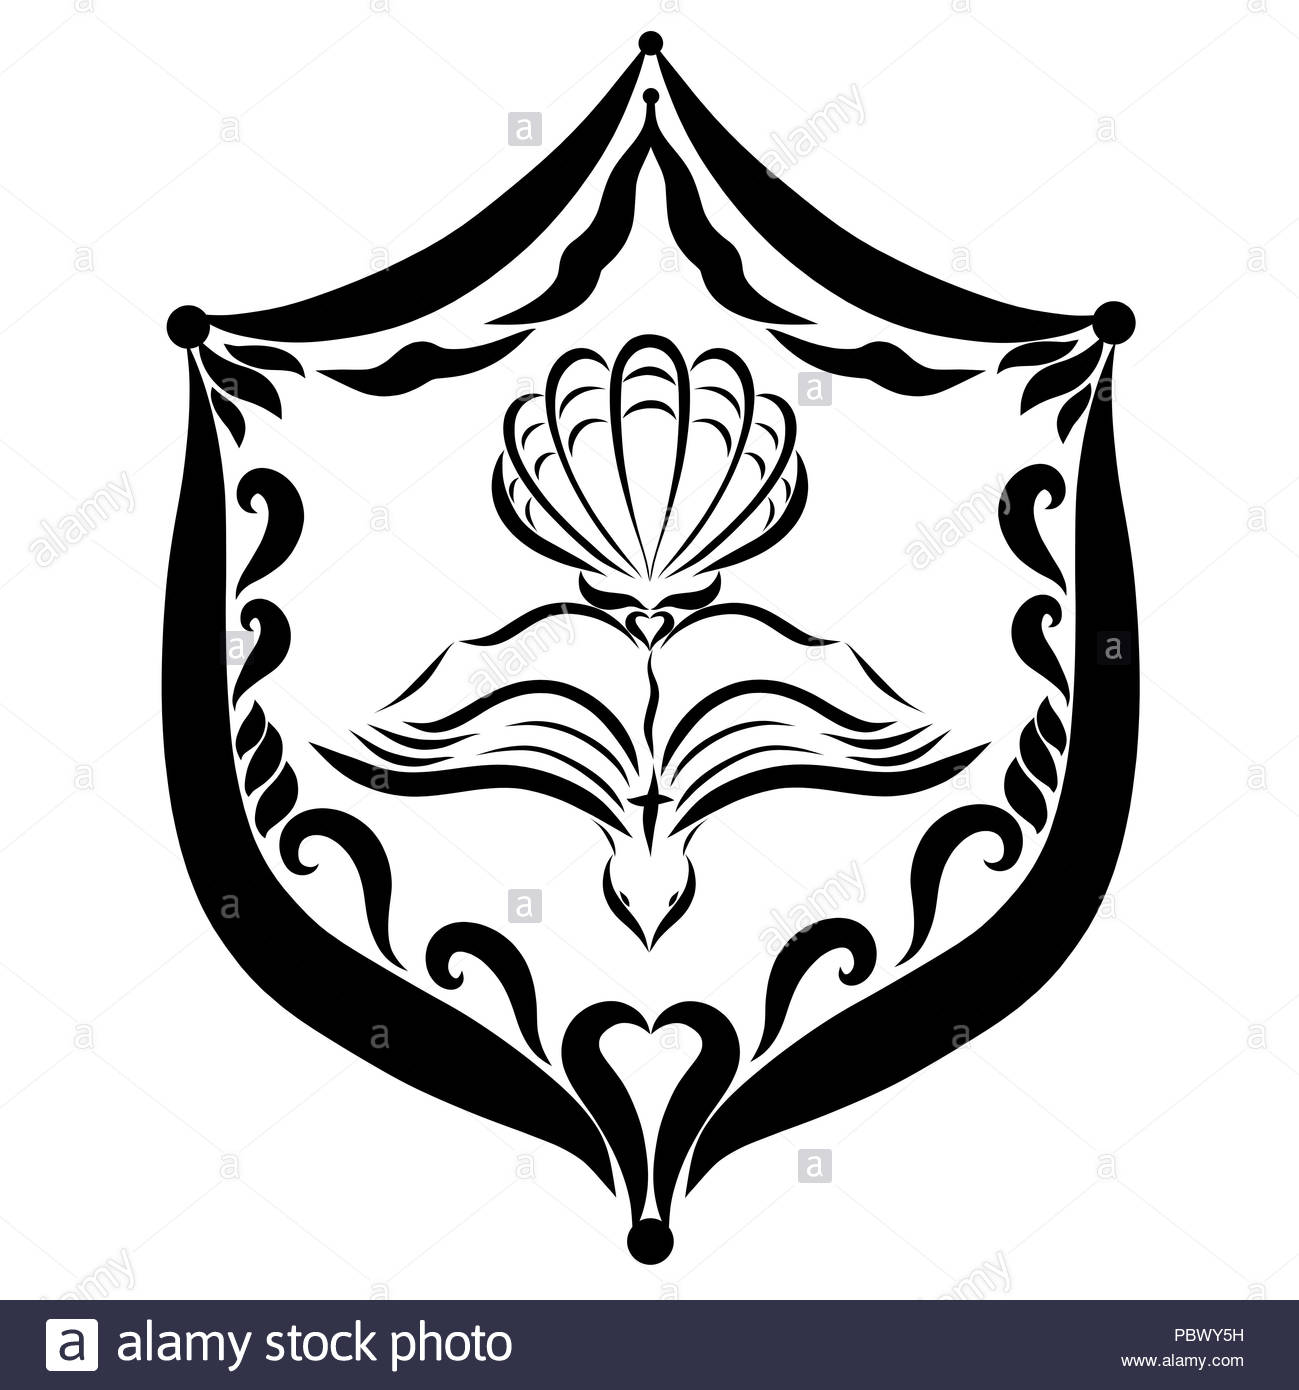 open bible flying dove and shell on the shield christian symbols